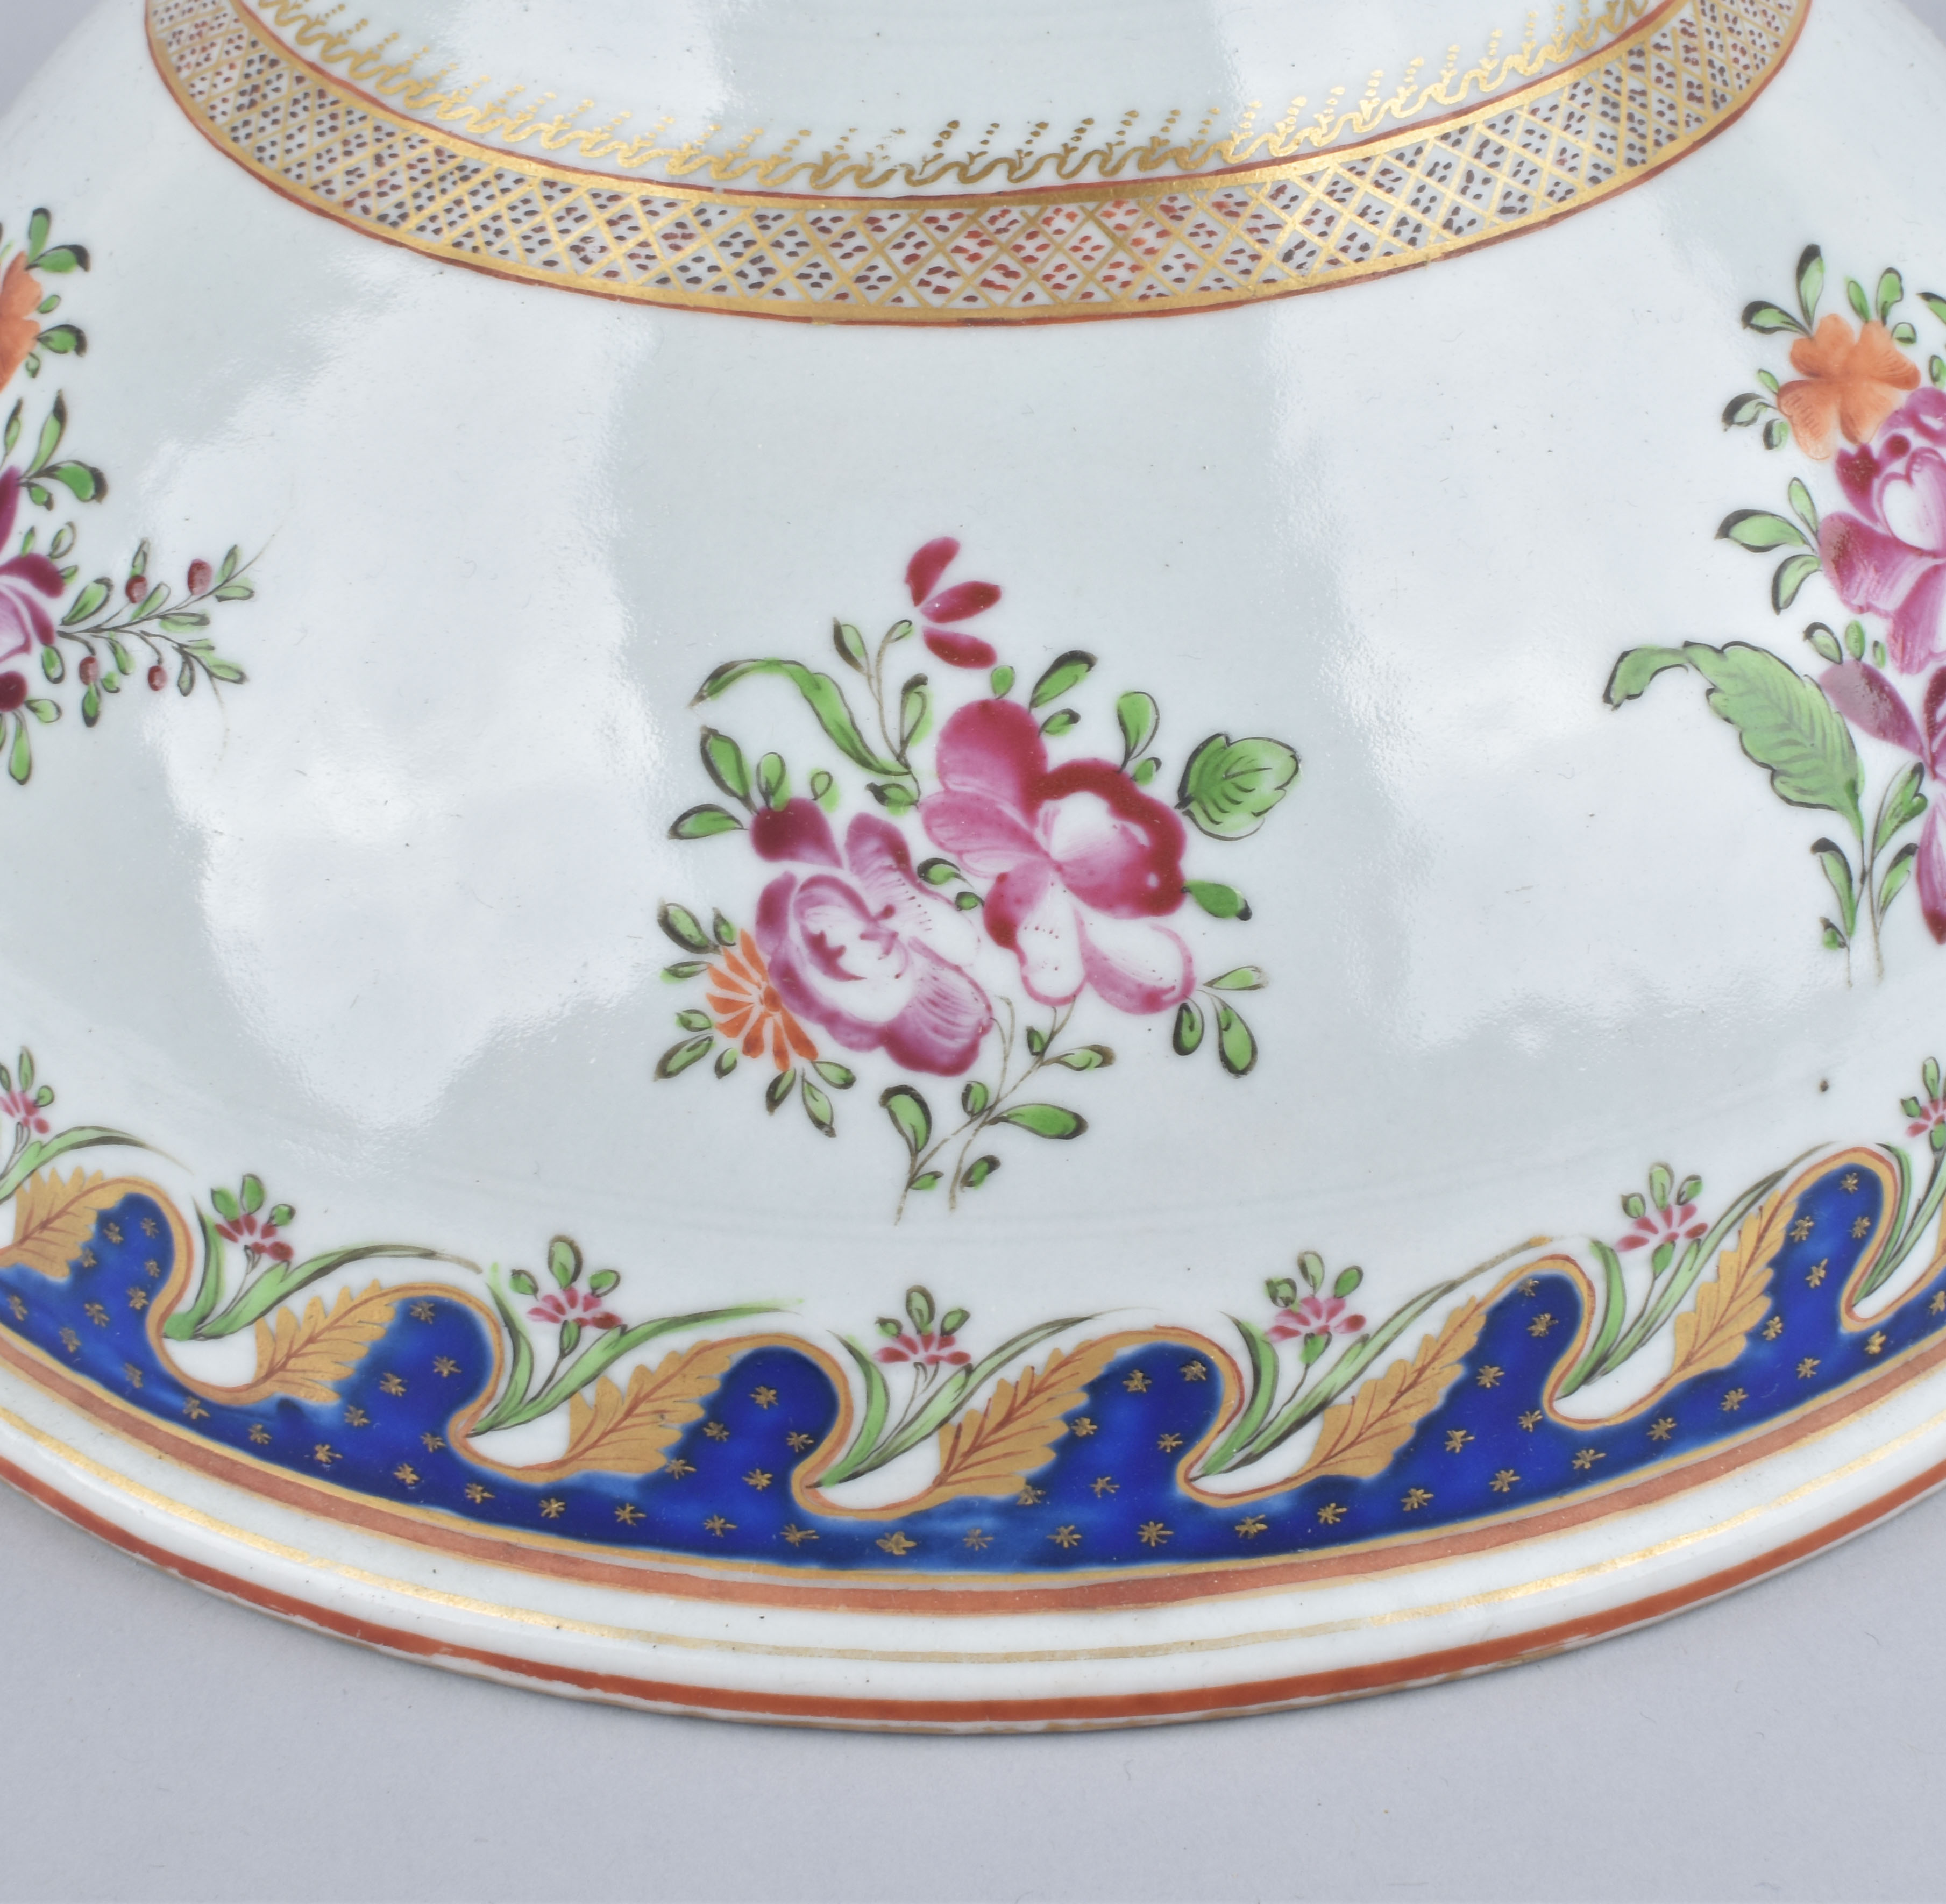 Porcelaine Late 18th century, China